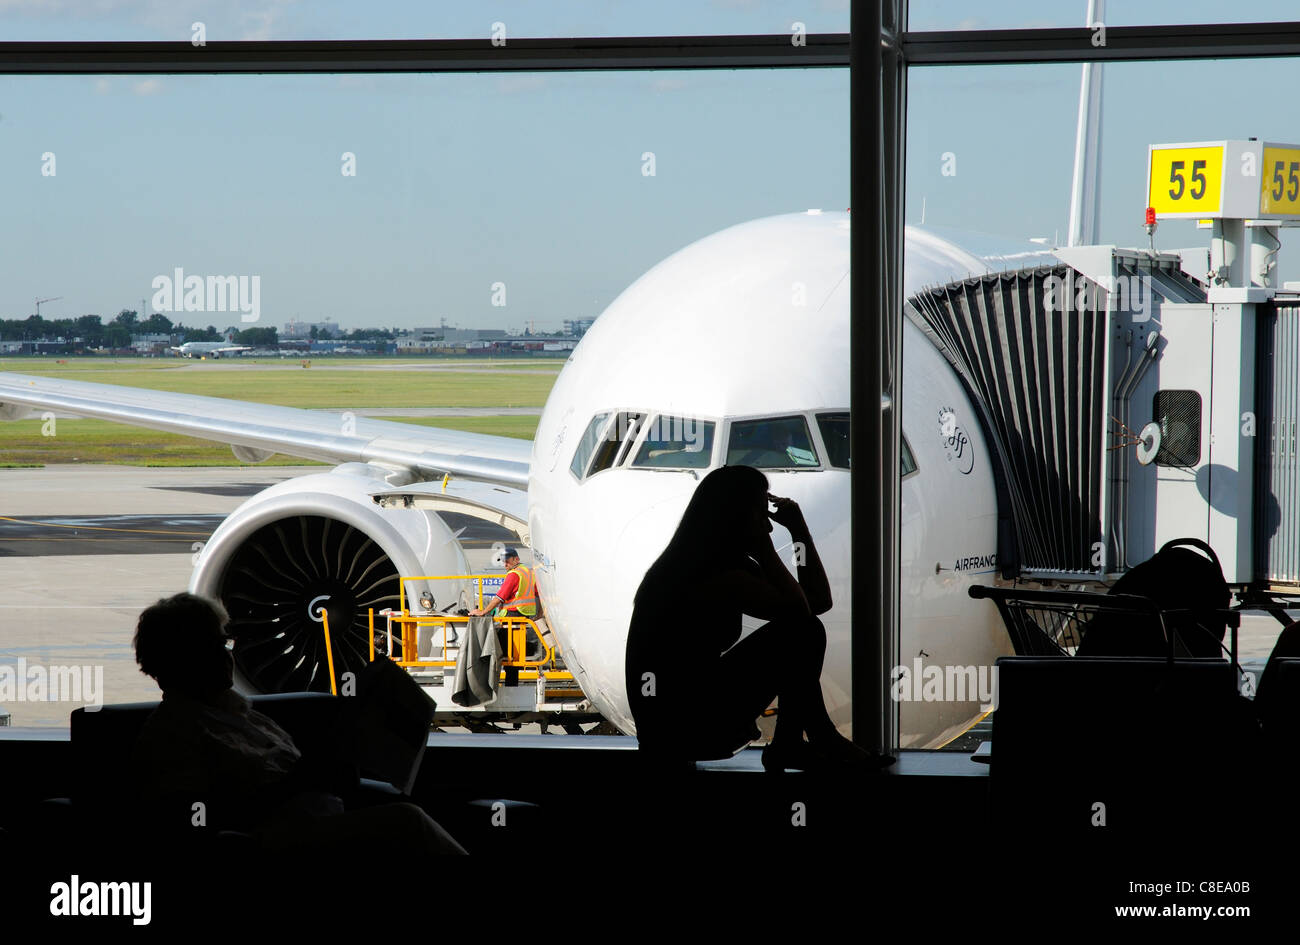 A young woman on a mobile phone in silhouette in an airport departure lounge window with a plane behind - Stock Image